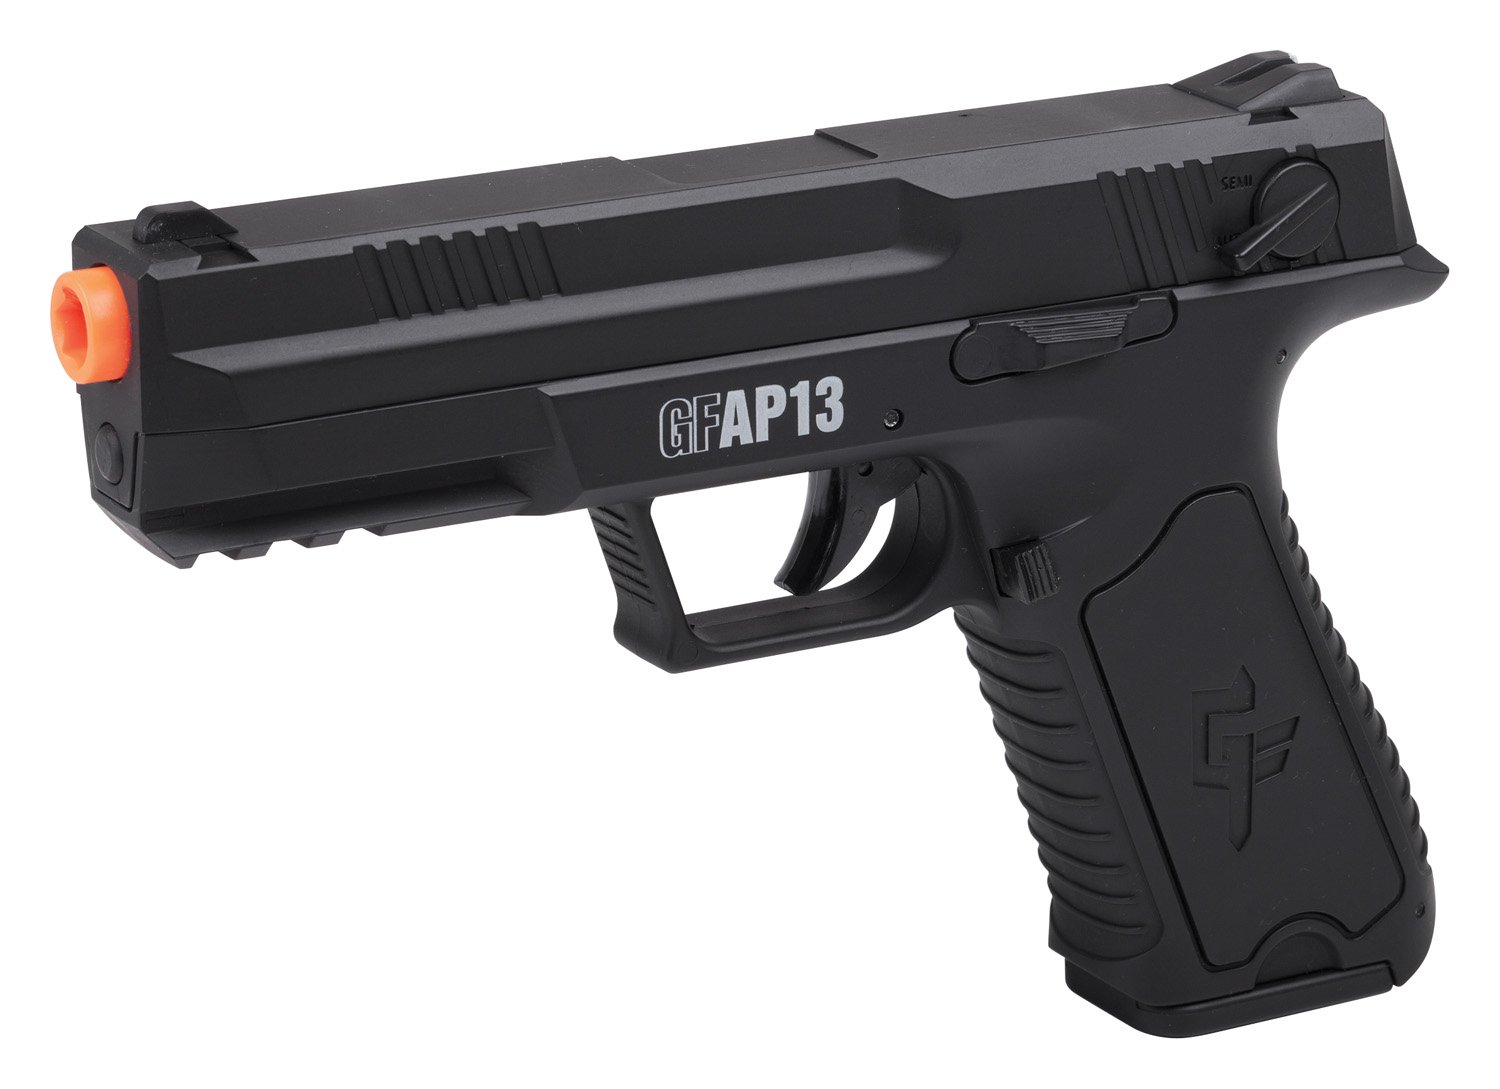 Game Face AEG Airsoft Pistol by Game Face